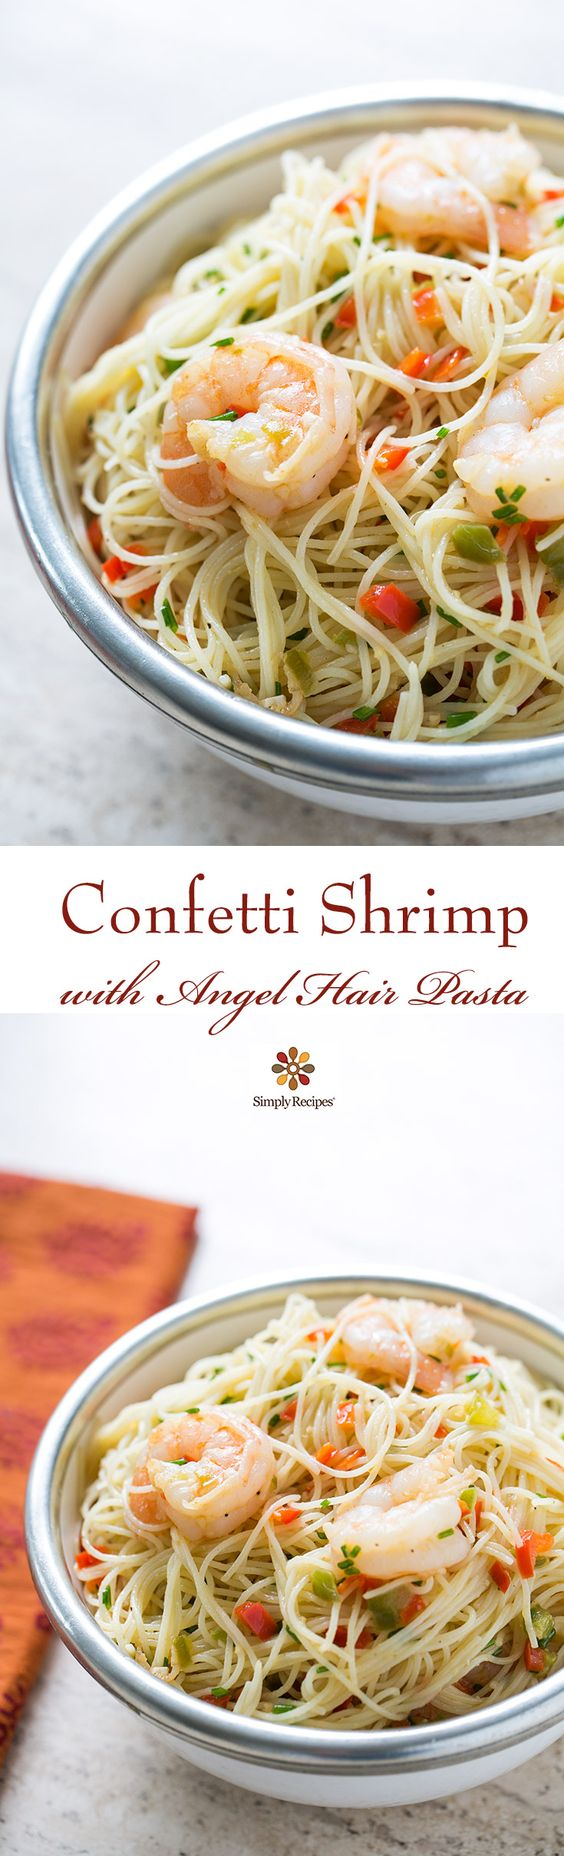 ... green bell pepper, tossed with angel hair pasta. ~ SimplyRecipes.com